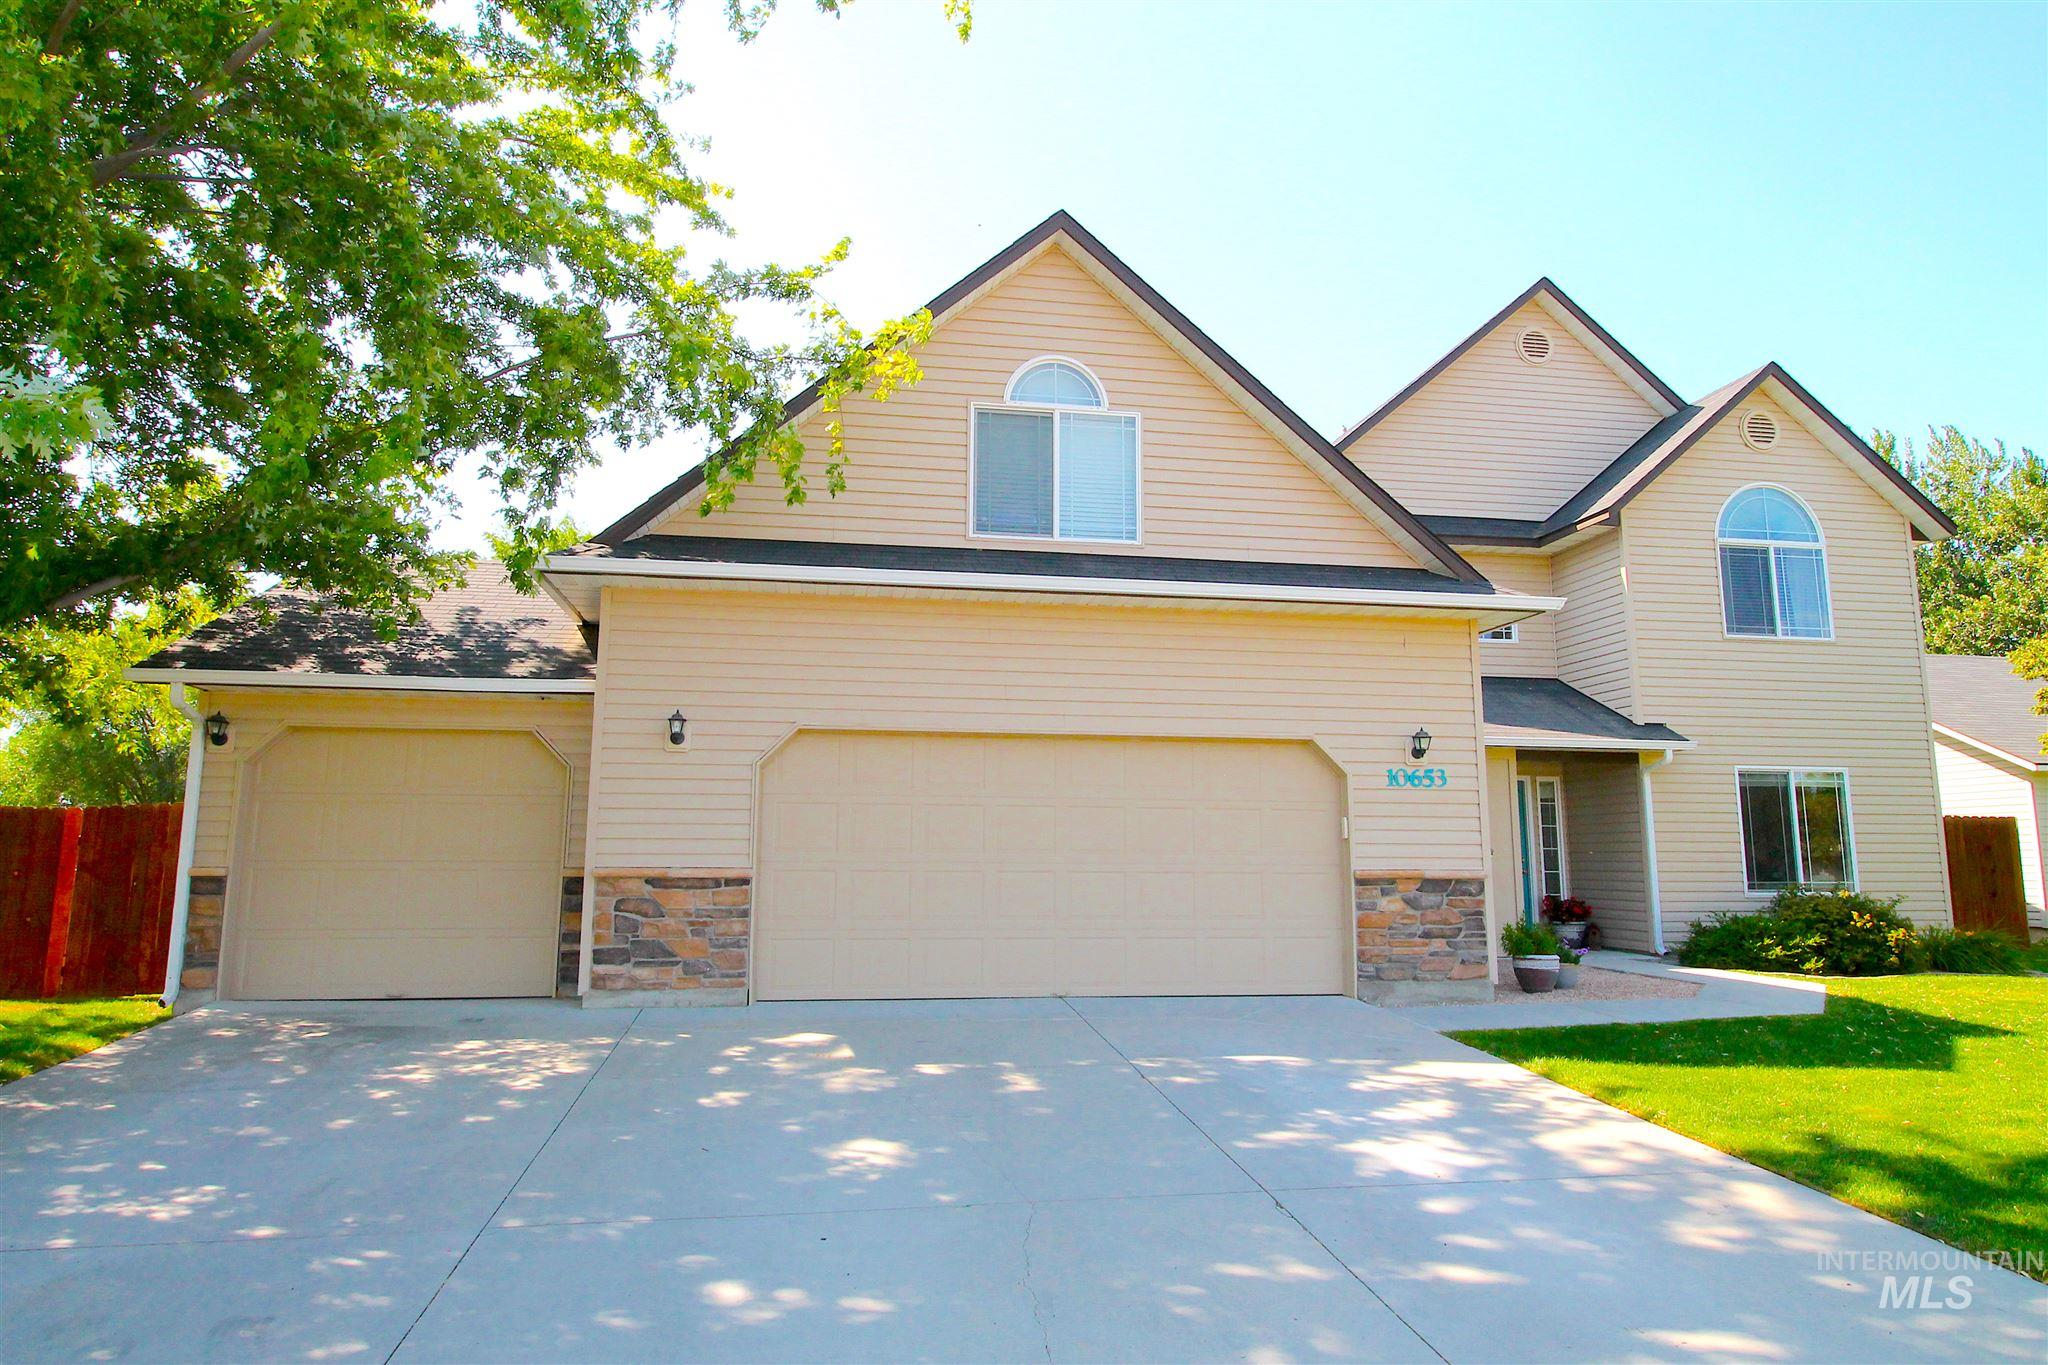 Photo for 10653 W Snow Wolf Dr., Star, ID 83669 (MLS # 98776047)